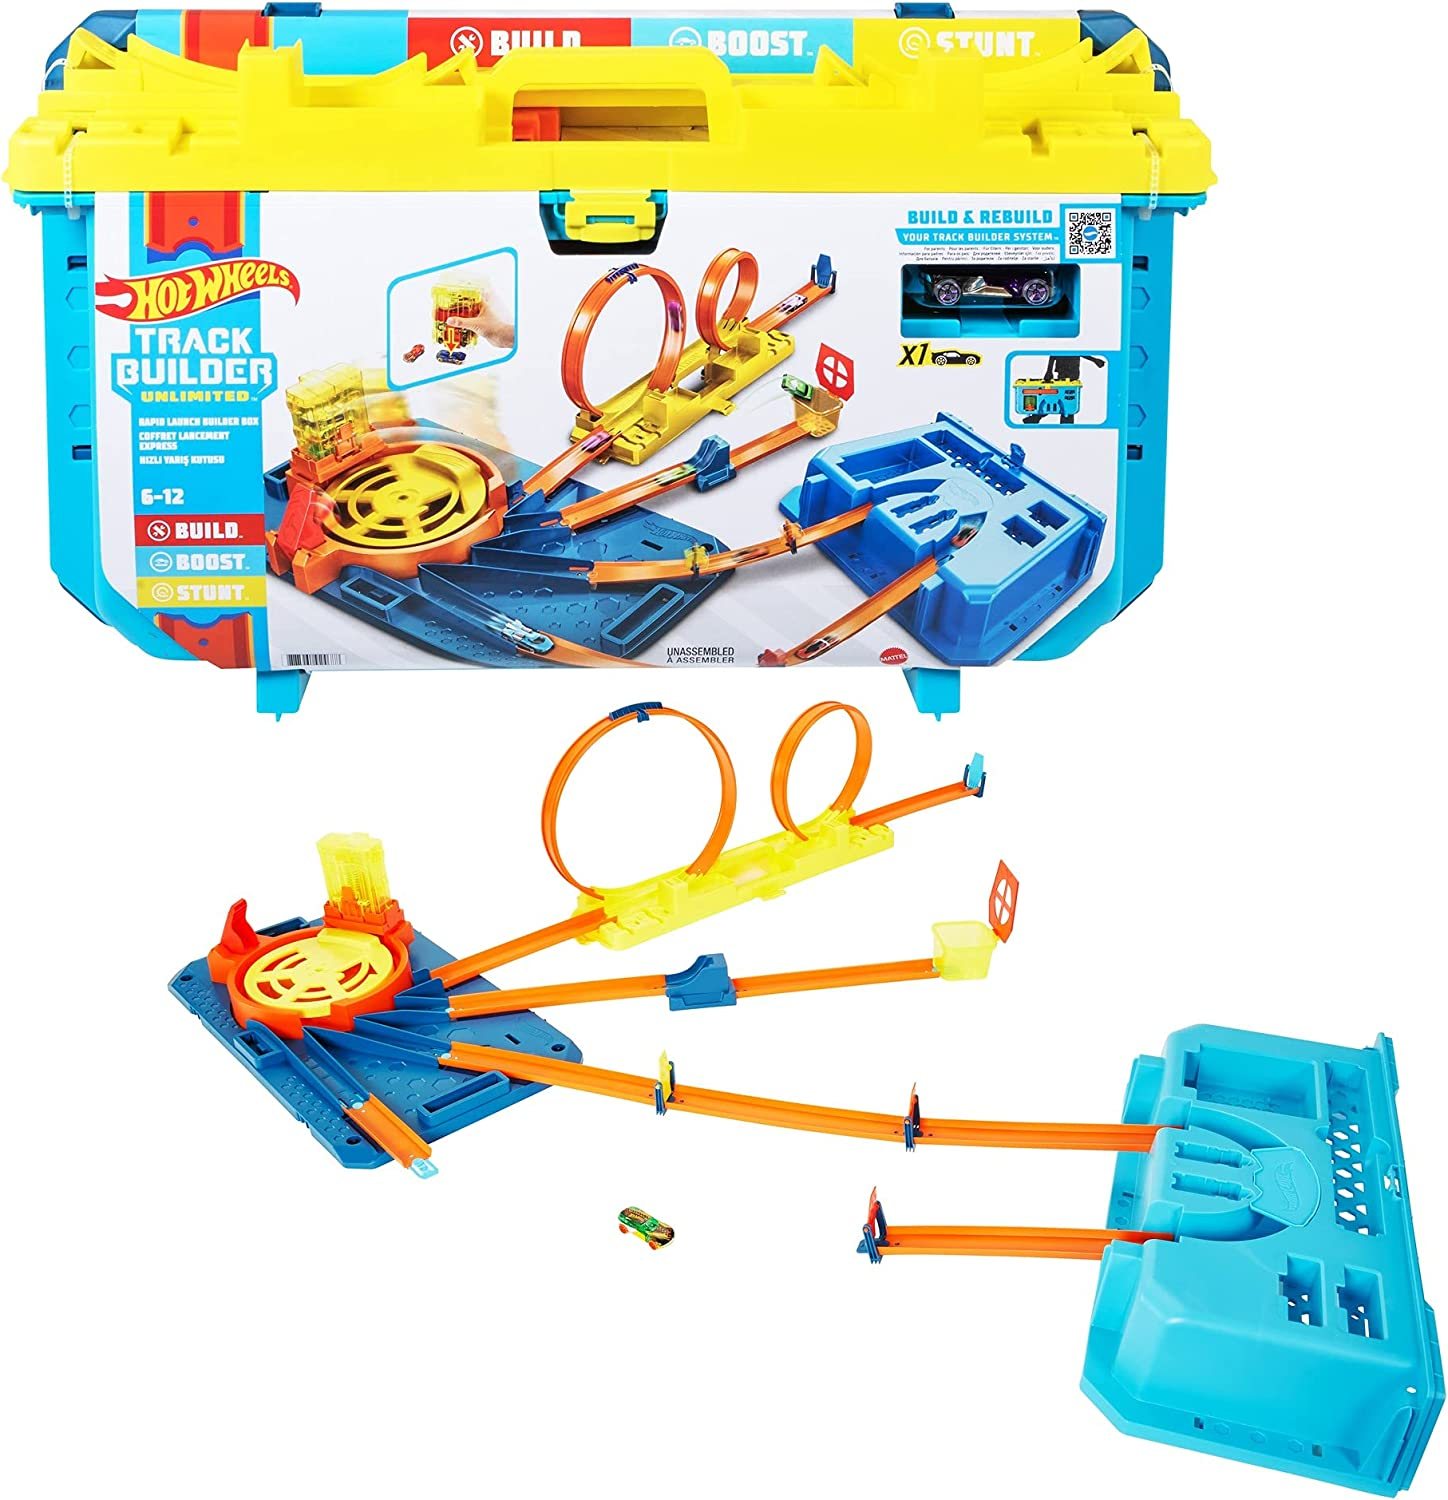 Max 50% OFF Hot Wheels Track Builder Unlimited Sale Special Price Launch Rapid Box All